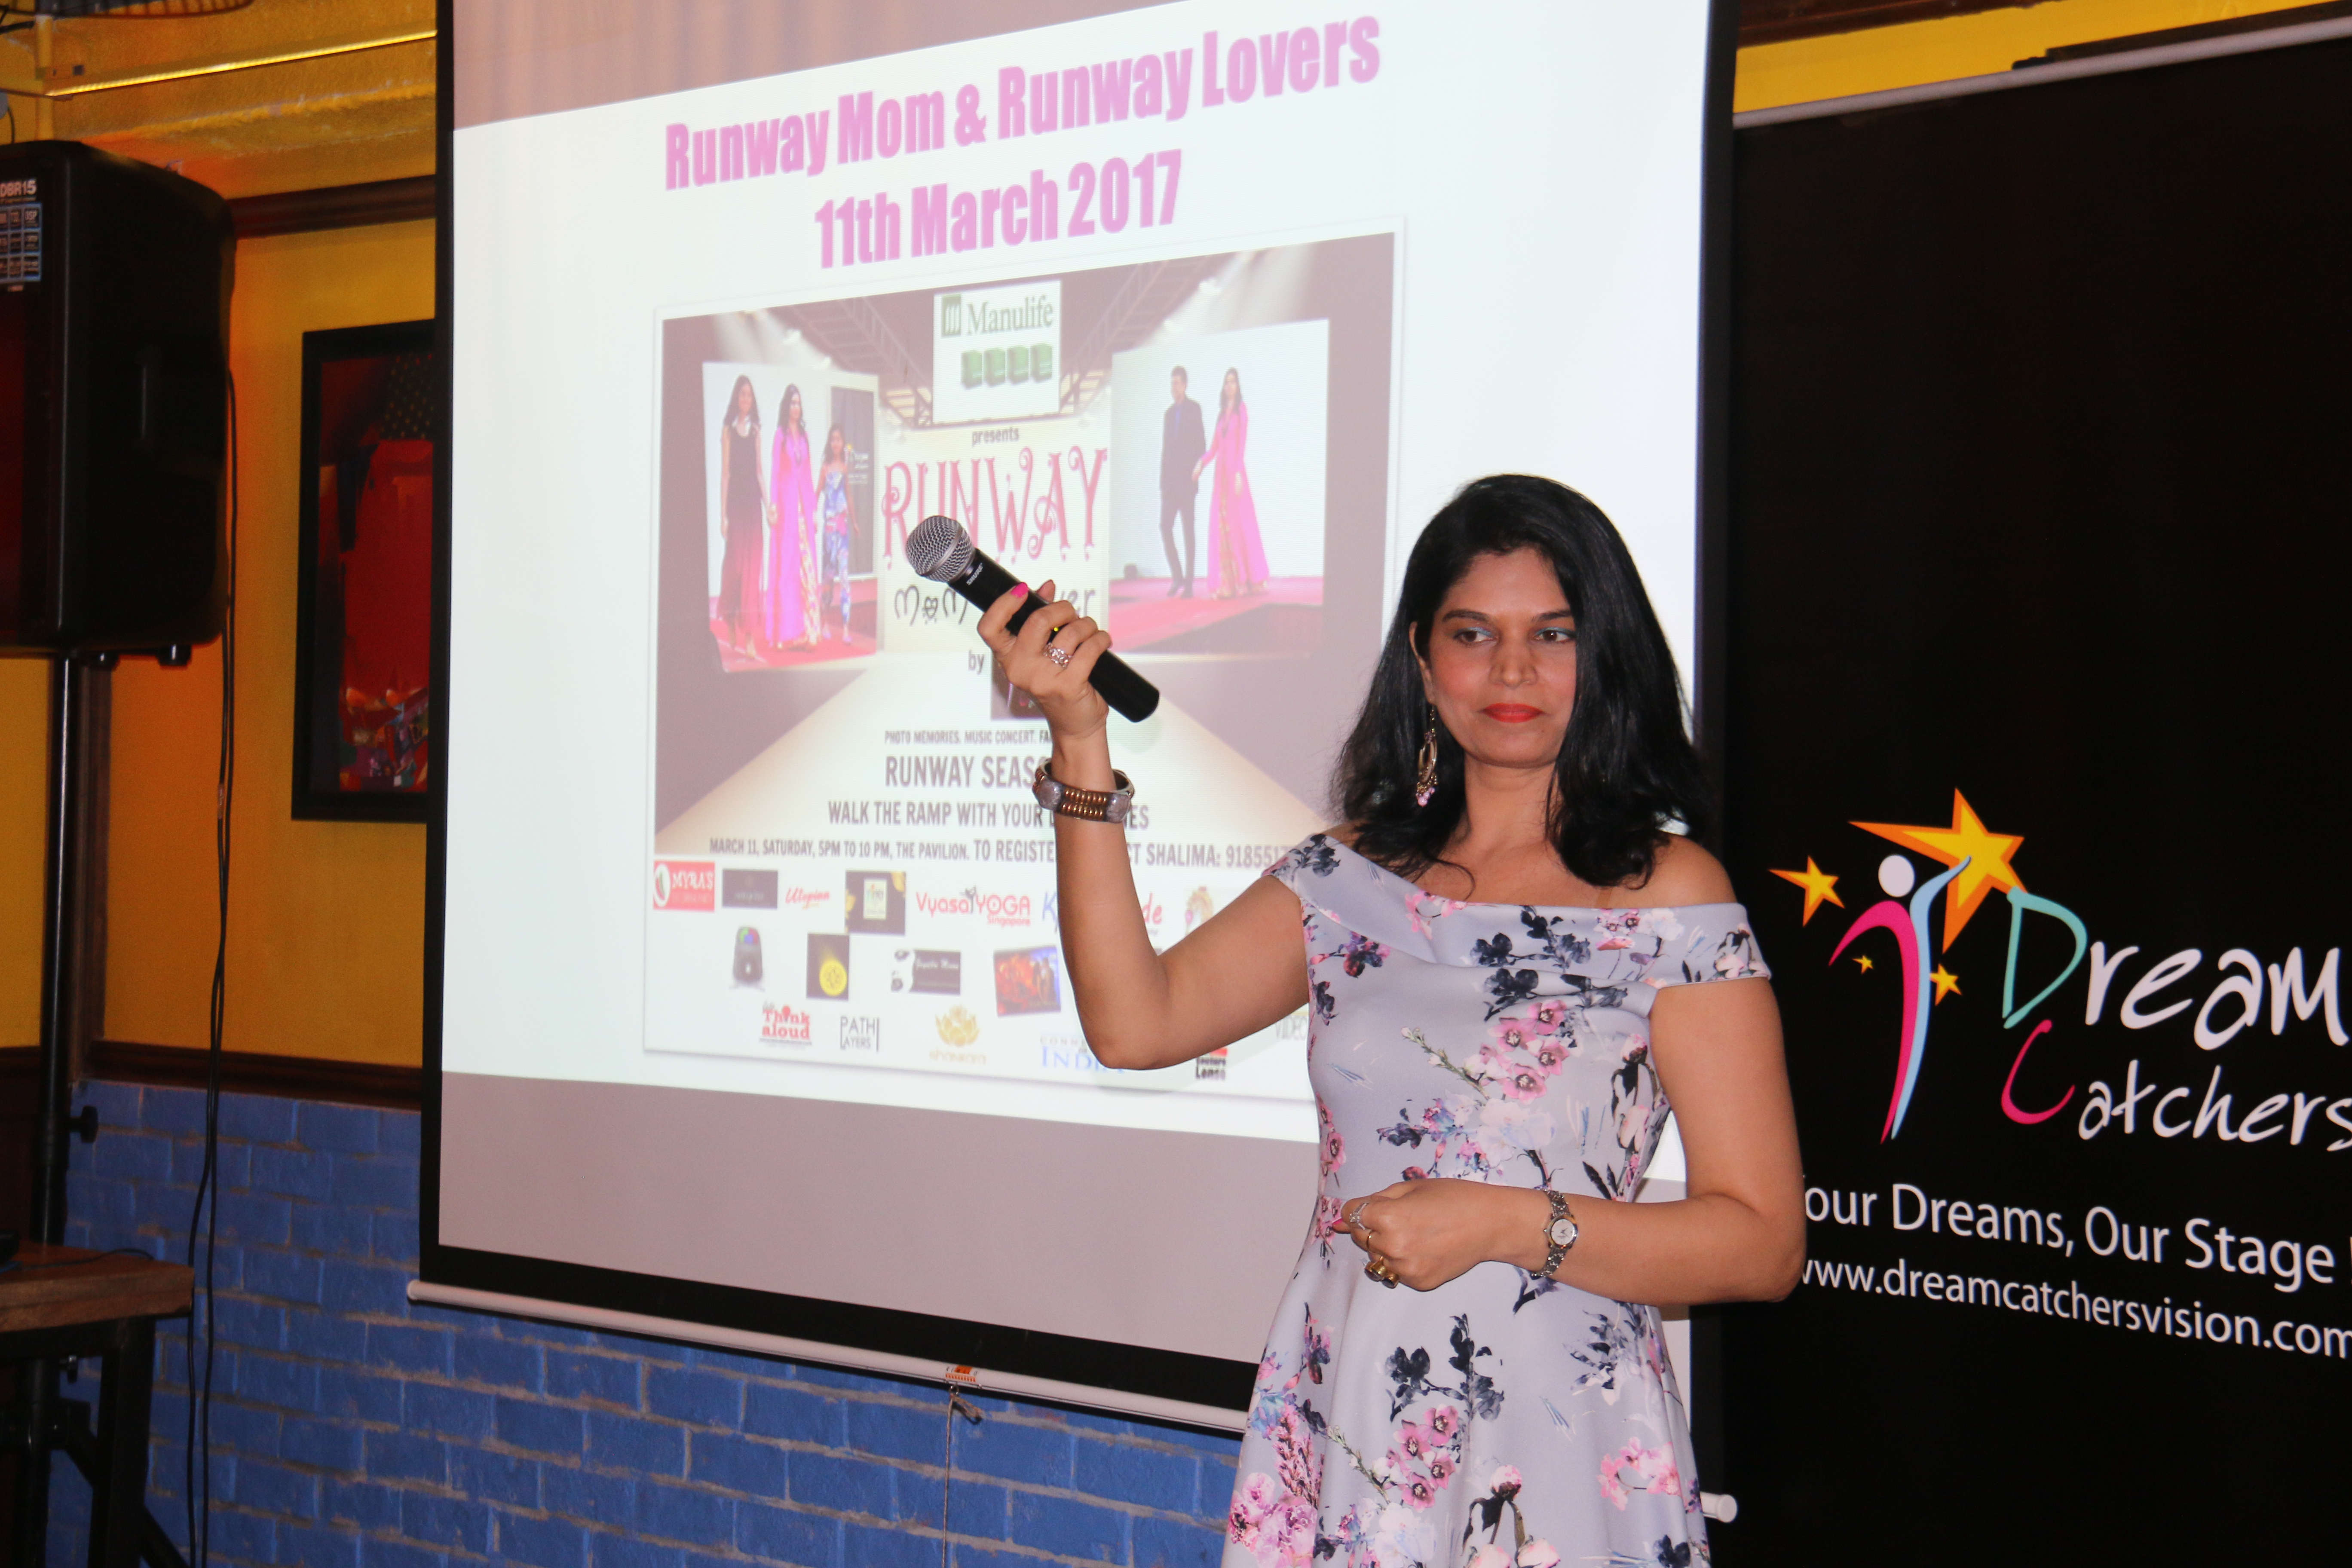 Indian Singaporean Shalima Motial, the founder and CEO of Dream Catchers